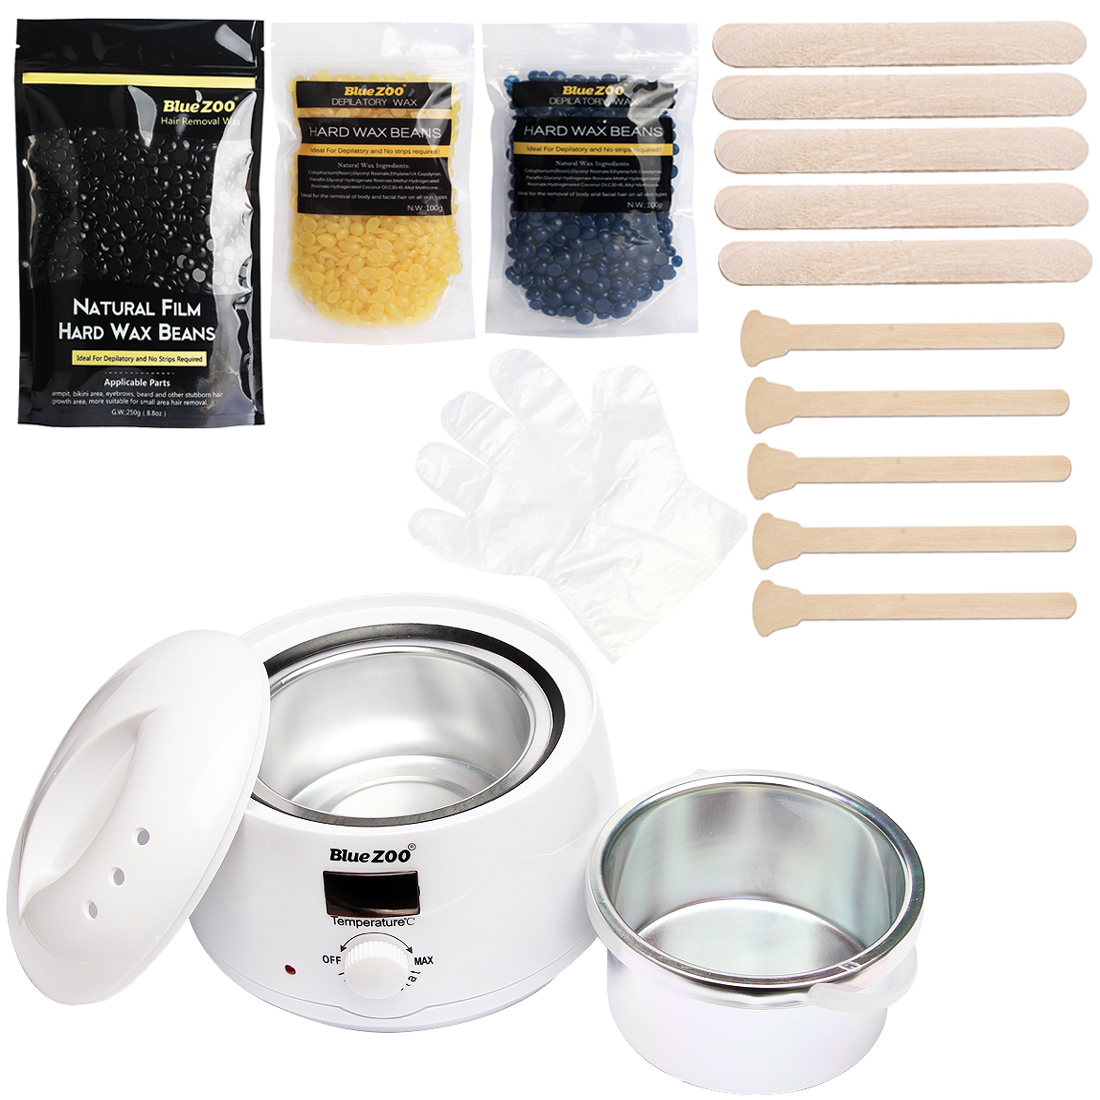 Home Economic Hot Film Hard Wax Beans Epilator Depilatory Set Wax Heater Pot 3 Bag Wax Beans + 10 Wood Spatulas + 10 Gloves economic methodology